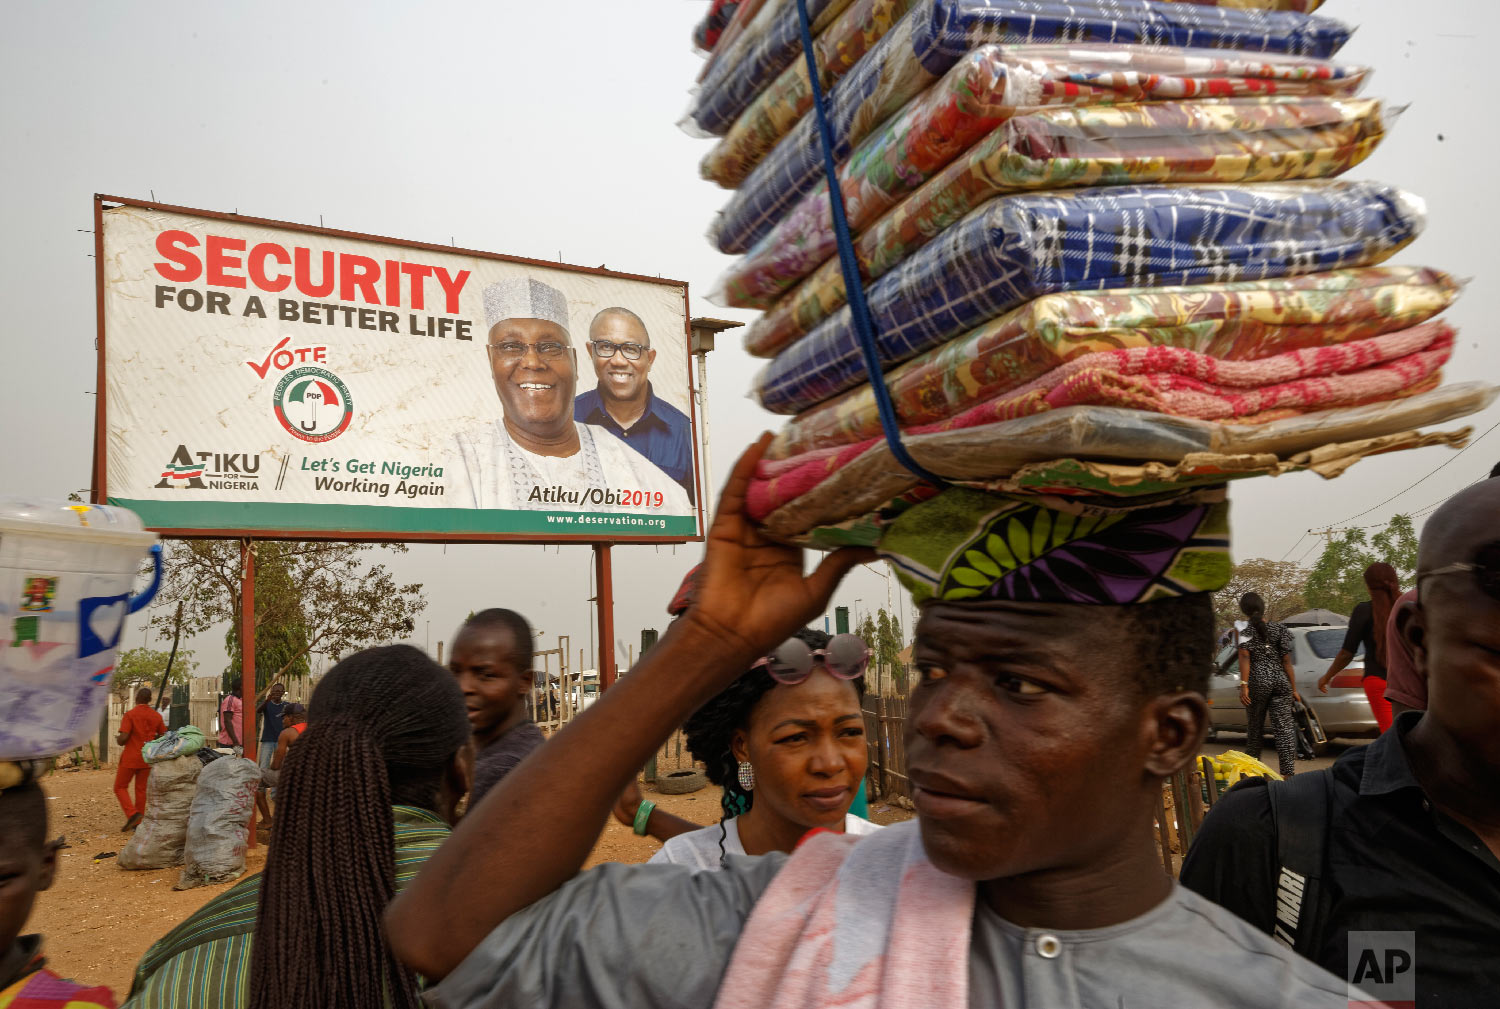 A street seller sells his wares by the side of the road next to a campaign poster for opposition presidential candidate Atiku Abubakar, at a busy intersection near Nyanya, on the eastern outskirts of the capital Abuja, Nigeria, Feb. 12, 2019. (AP Photo/Ben Curtis)